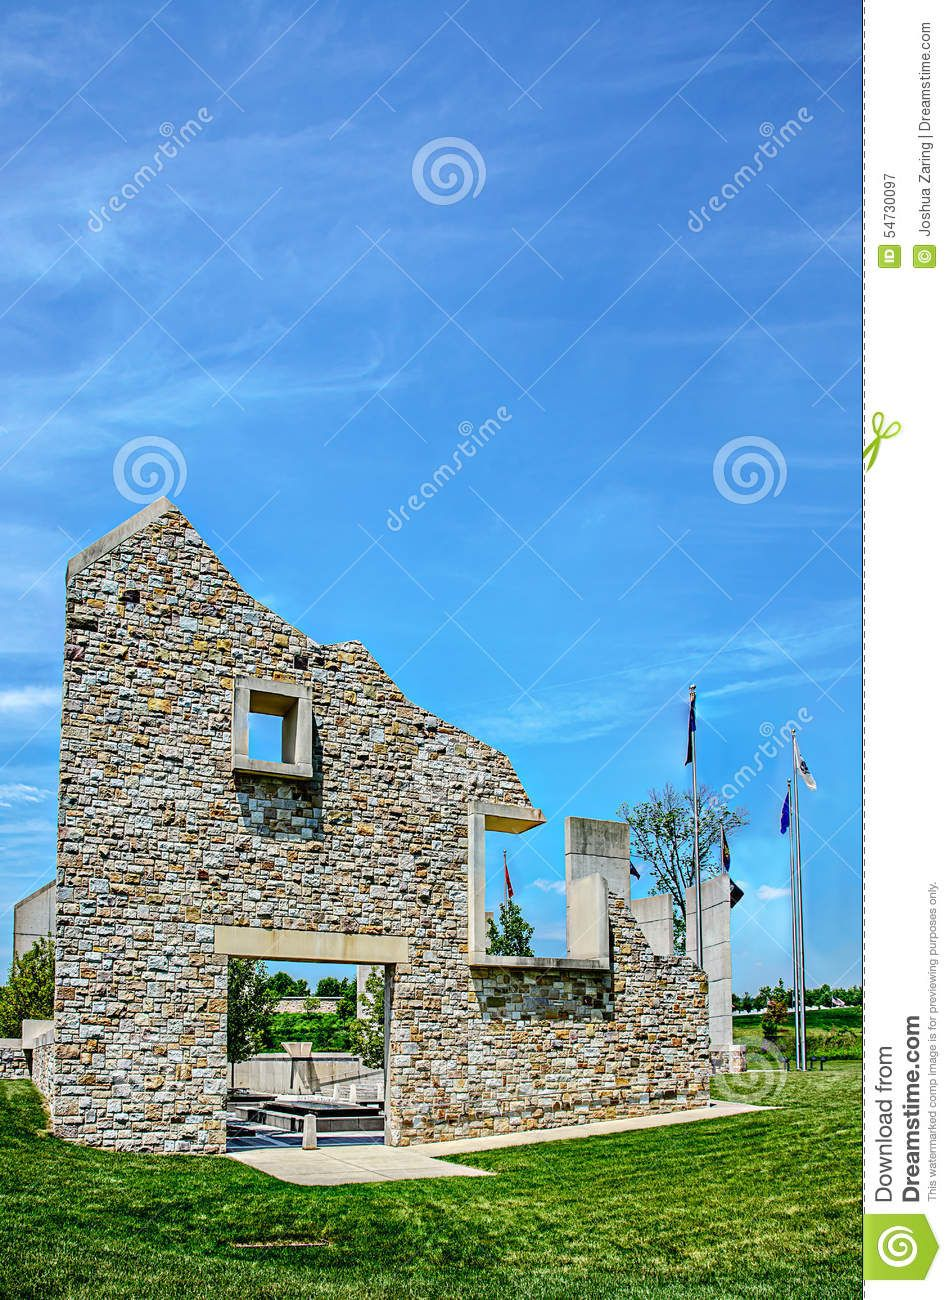 Fort indiantown gap barn monument front image